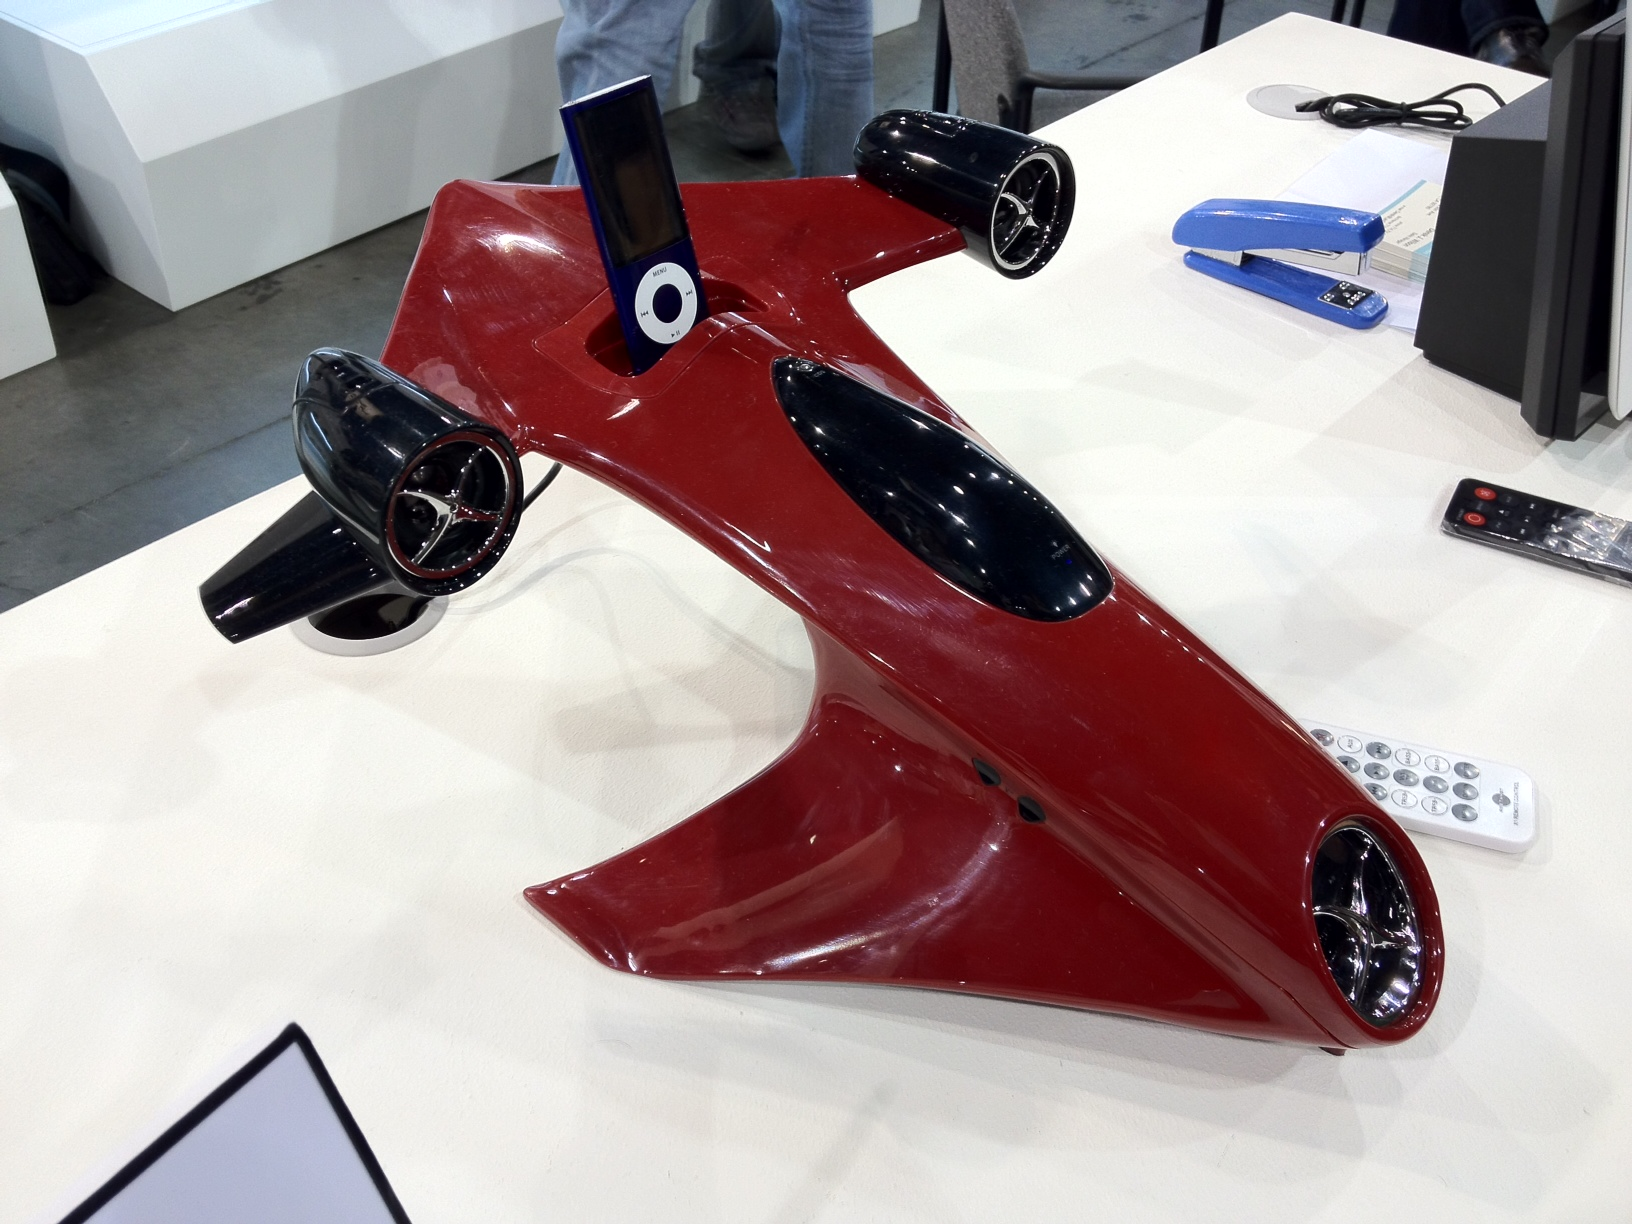 CES 2012: Spice Up Your Living Room With This Rocket Ship Speaker From Lanchiya